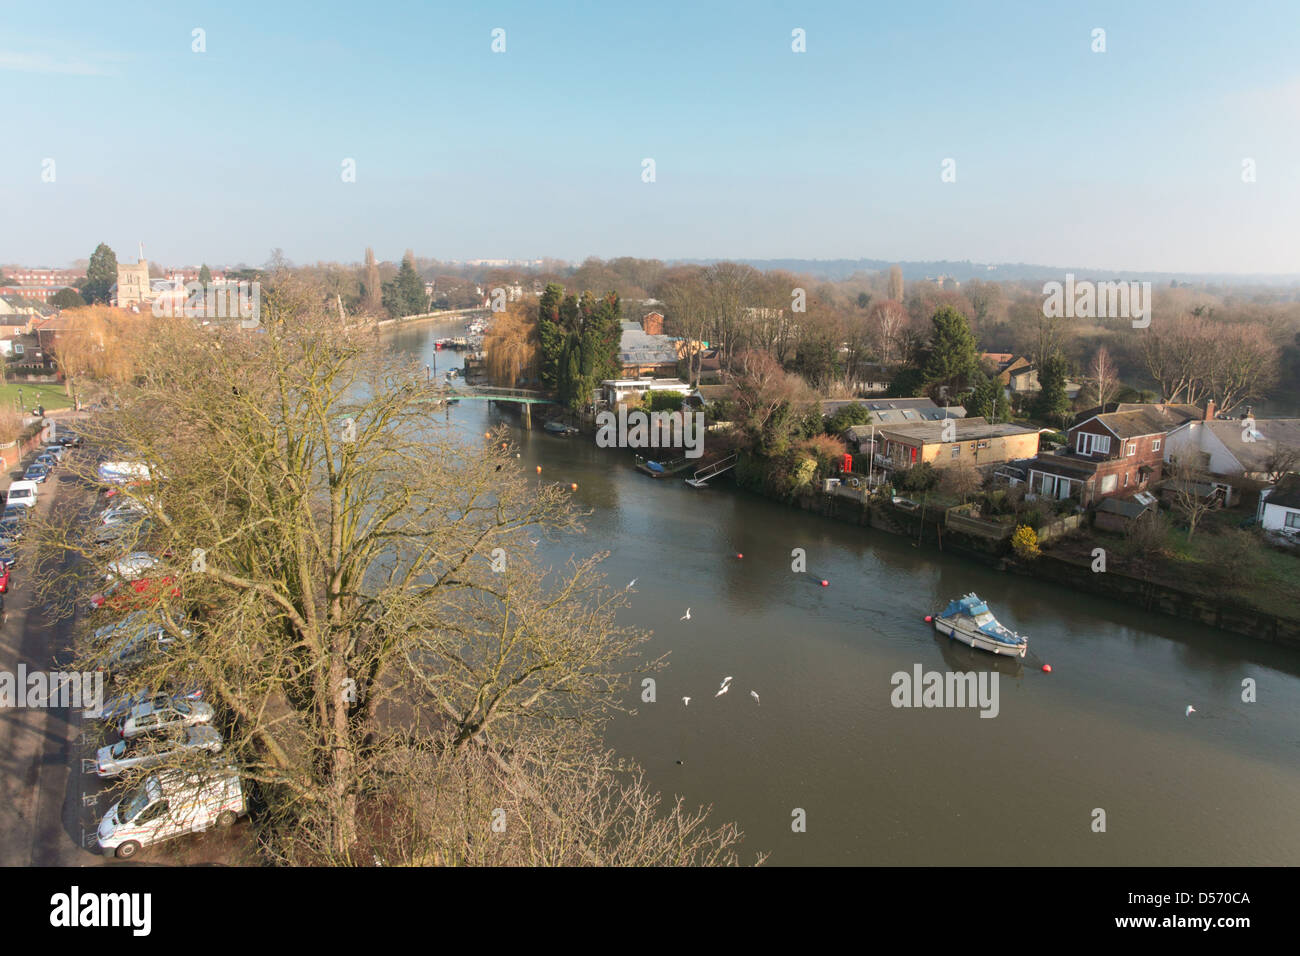 View of the River Thames at Twickenham - Stock Image